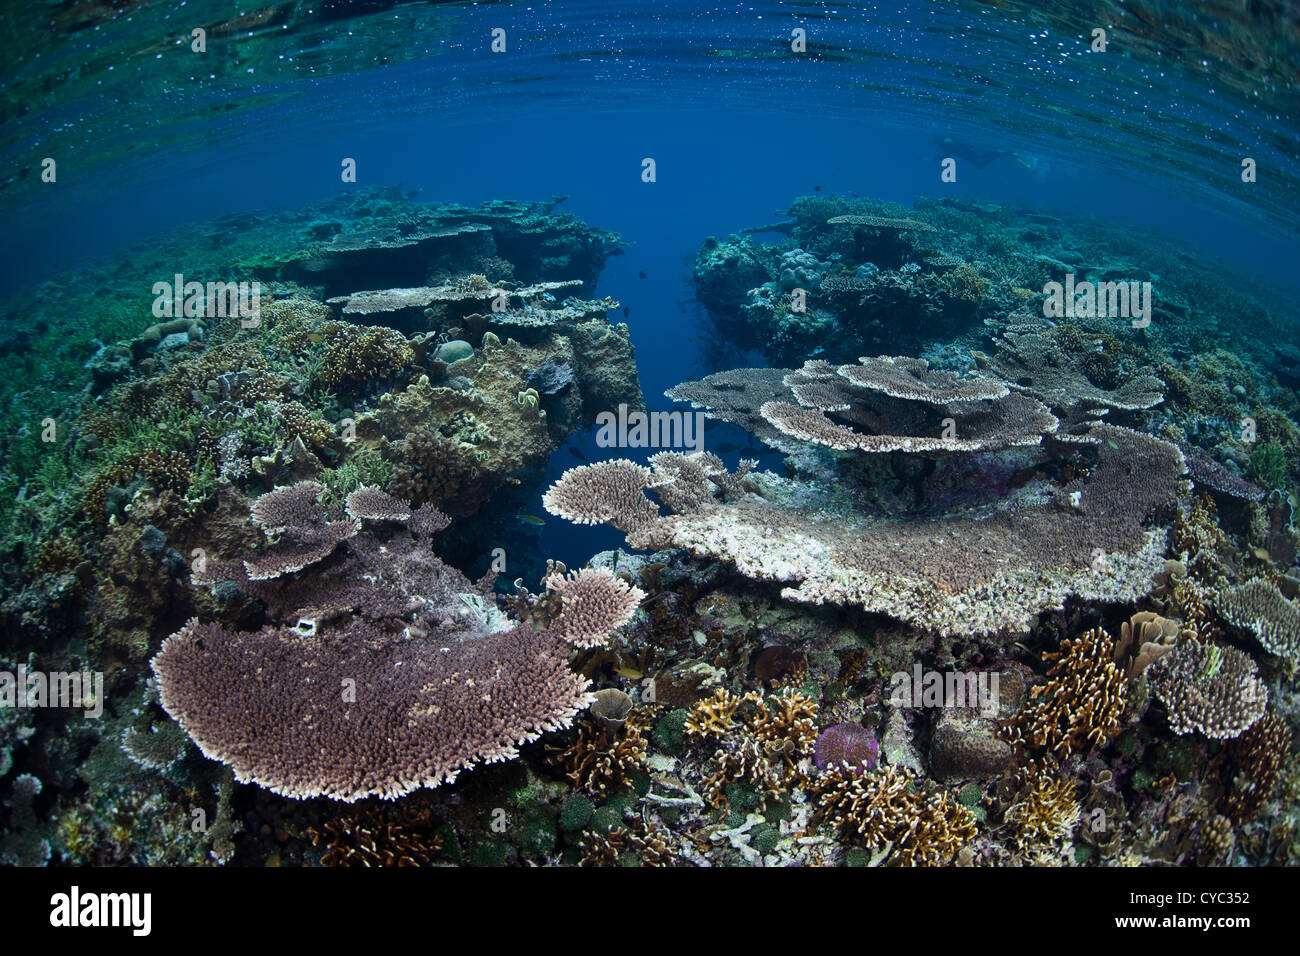 A diversity of reef-building corals grow on a shallow reef flat where they can be viewed by snorkelers or divers. - Stock Image